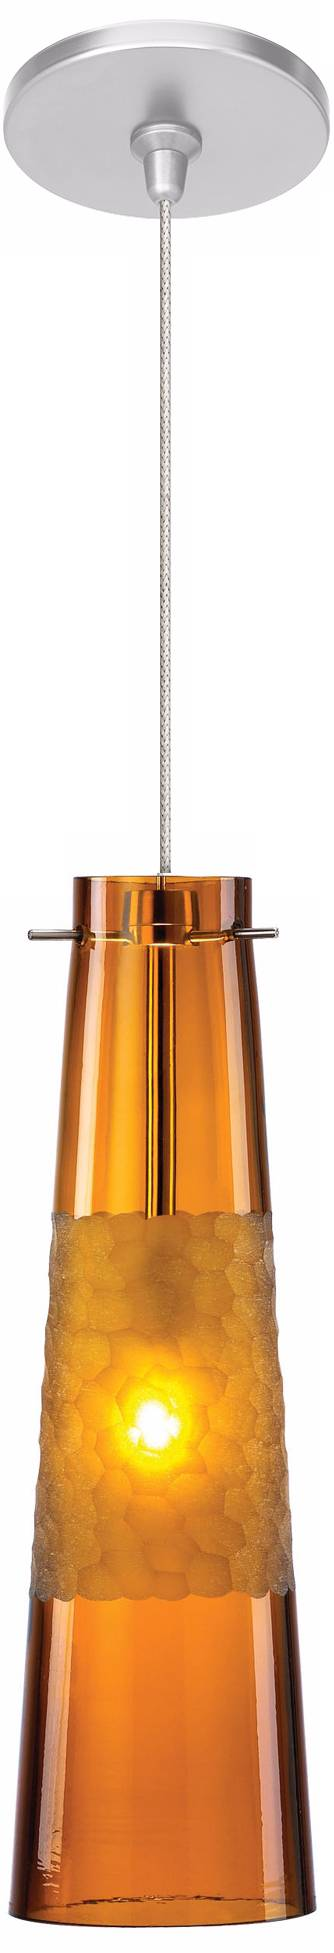 Lbl bonn 3 3 4 wide amber nickel mini pendant